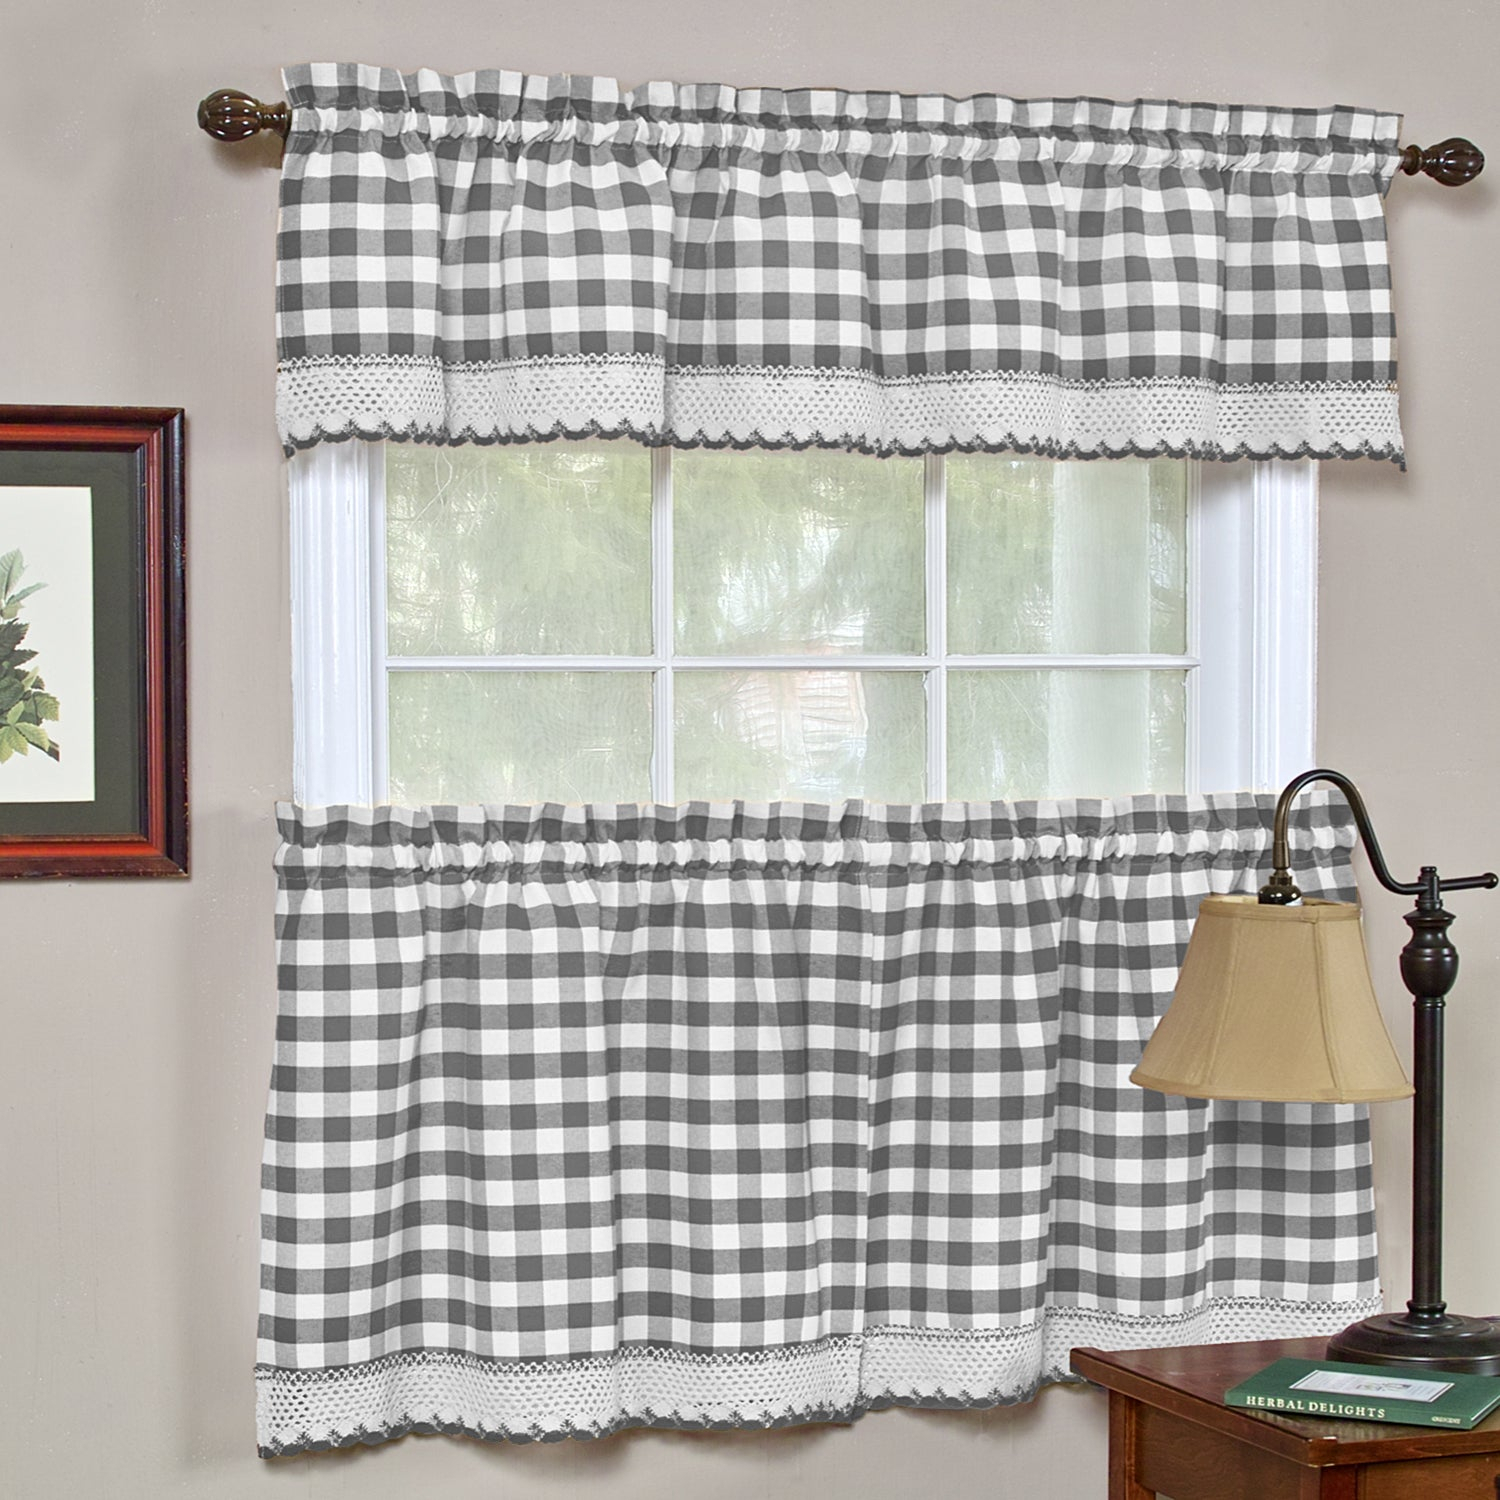 Buffalo Check Cotton Blend Grey Kitchen Curtain Tier Pair Within Class Blue Cotton Blend Macrame Trimmed Decorative Window Curtains (View 20 of 20)